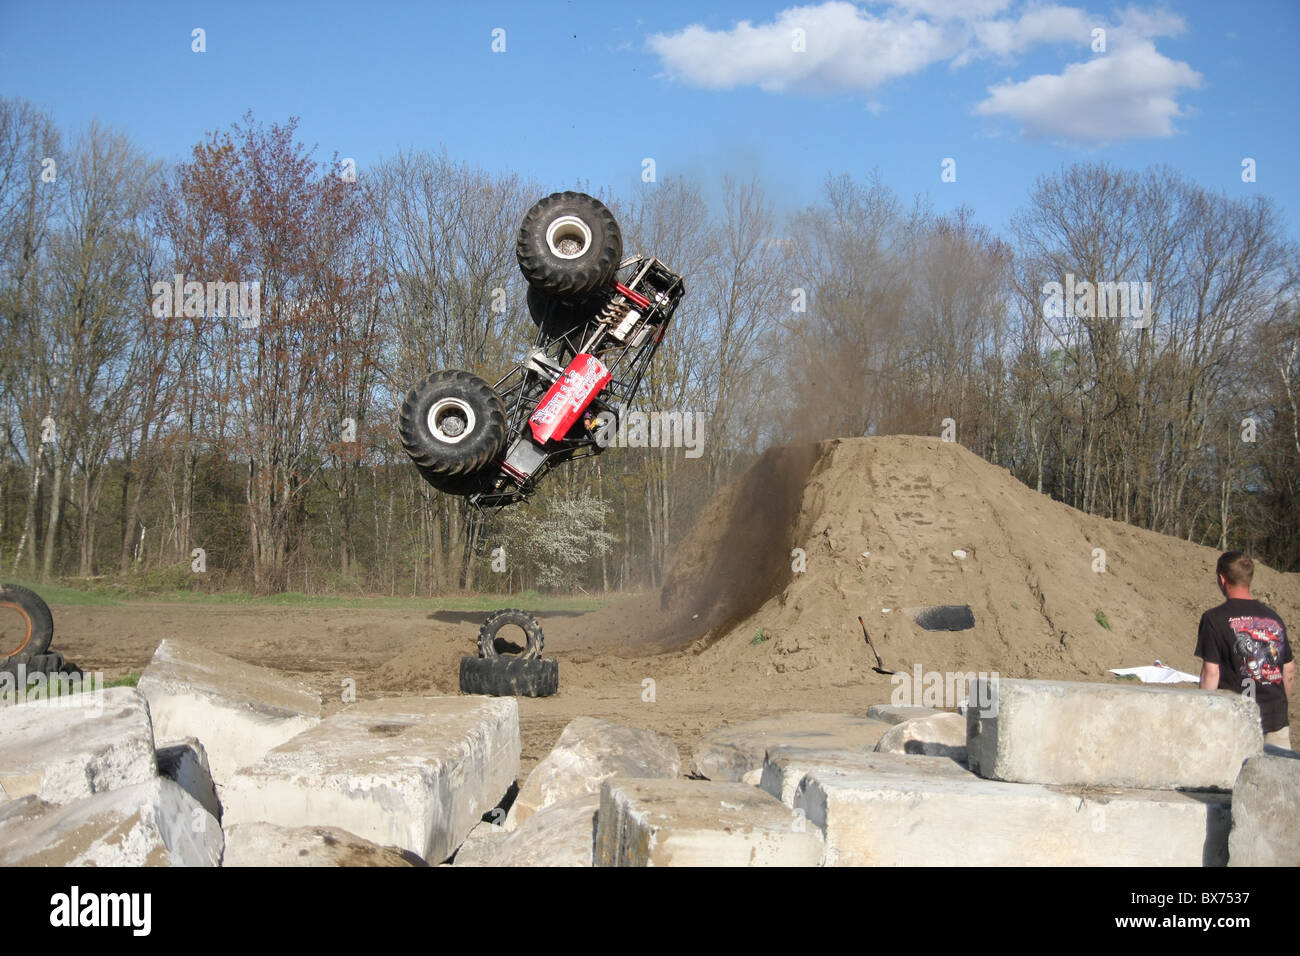 Monster Truck Ghost Ryder attempting a flip at the Vermonster 4x4 rally in Bradford, Vermont - Stock Image